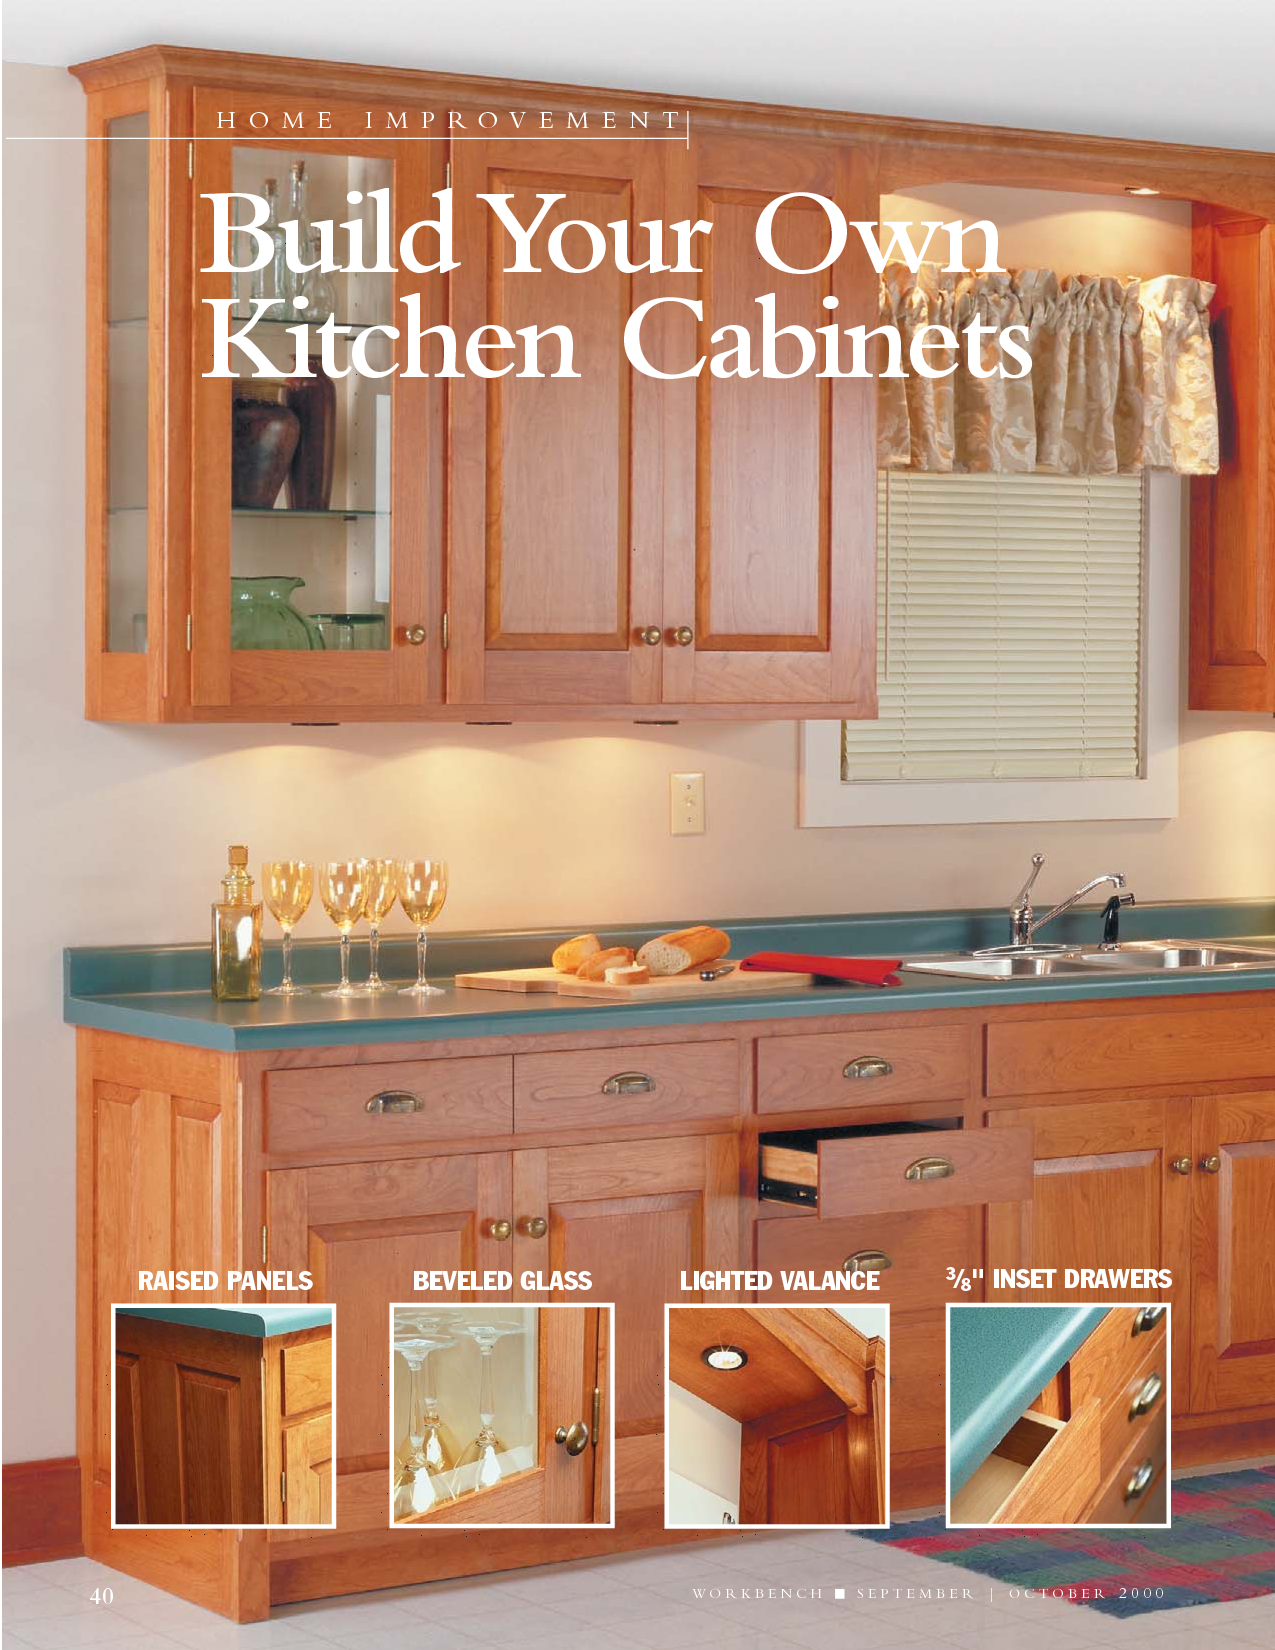 Build Your Own Kitchen Cabinets Plans Learn Step By Step How To Build  Cabinets For Your Kitchen Learn How You Can Build Kitchen Cabinets From  Scratch And ...